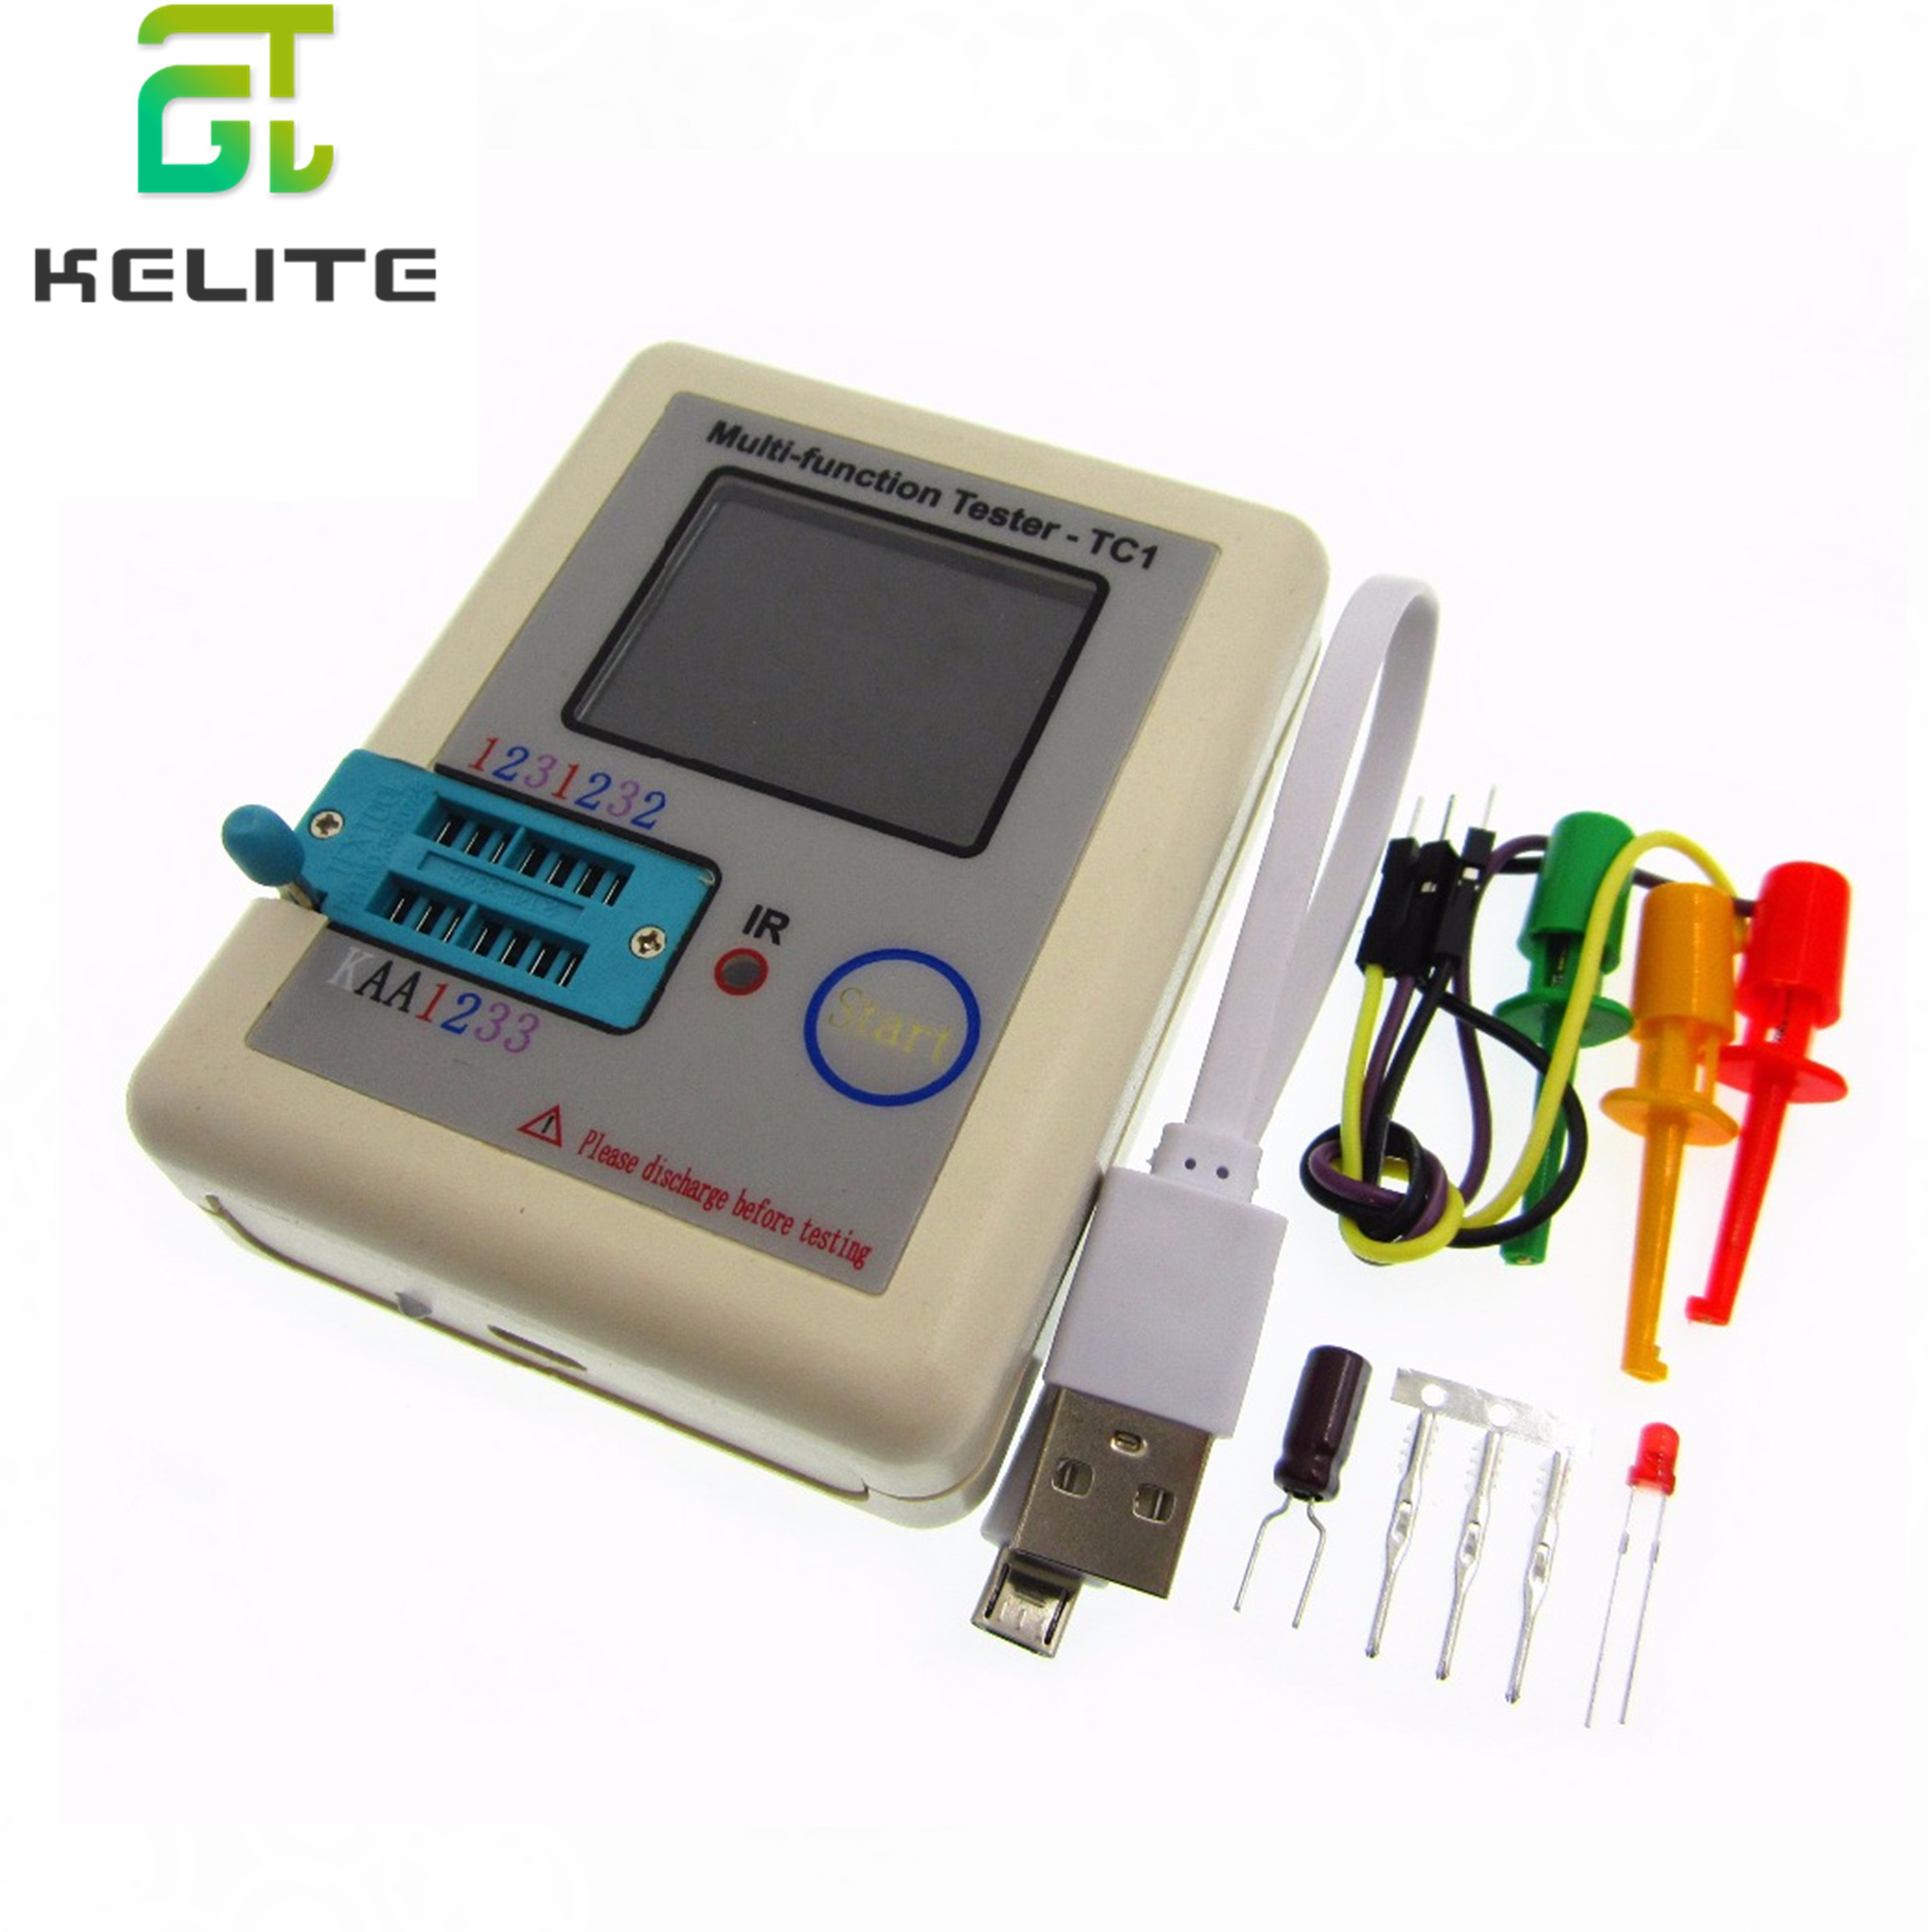 New LCR-TC1 3.5inch Colorful Display Multifunctional TFT Backlight Transistor Tester